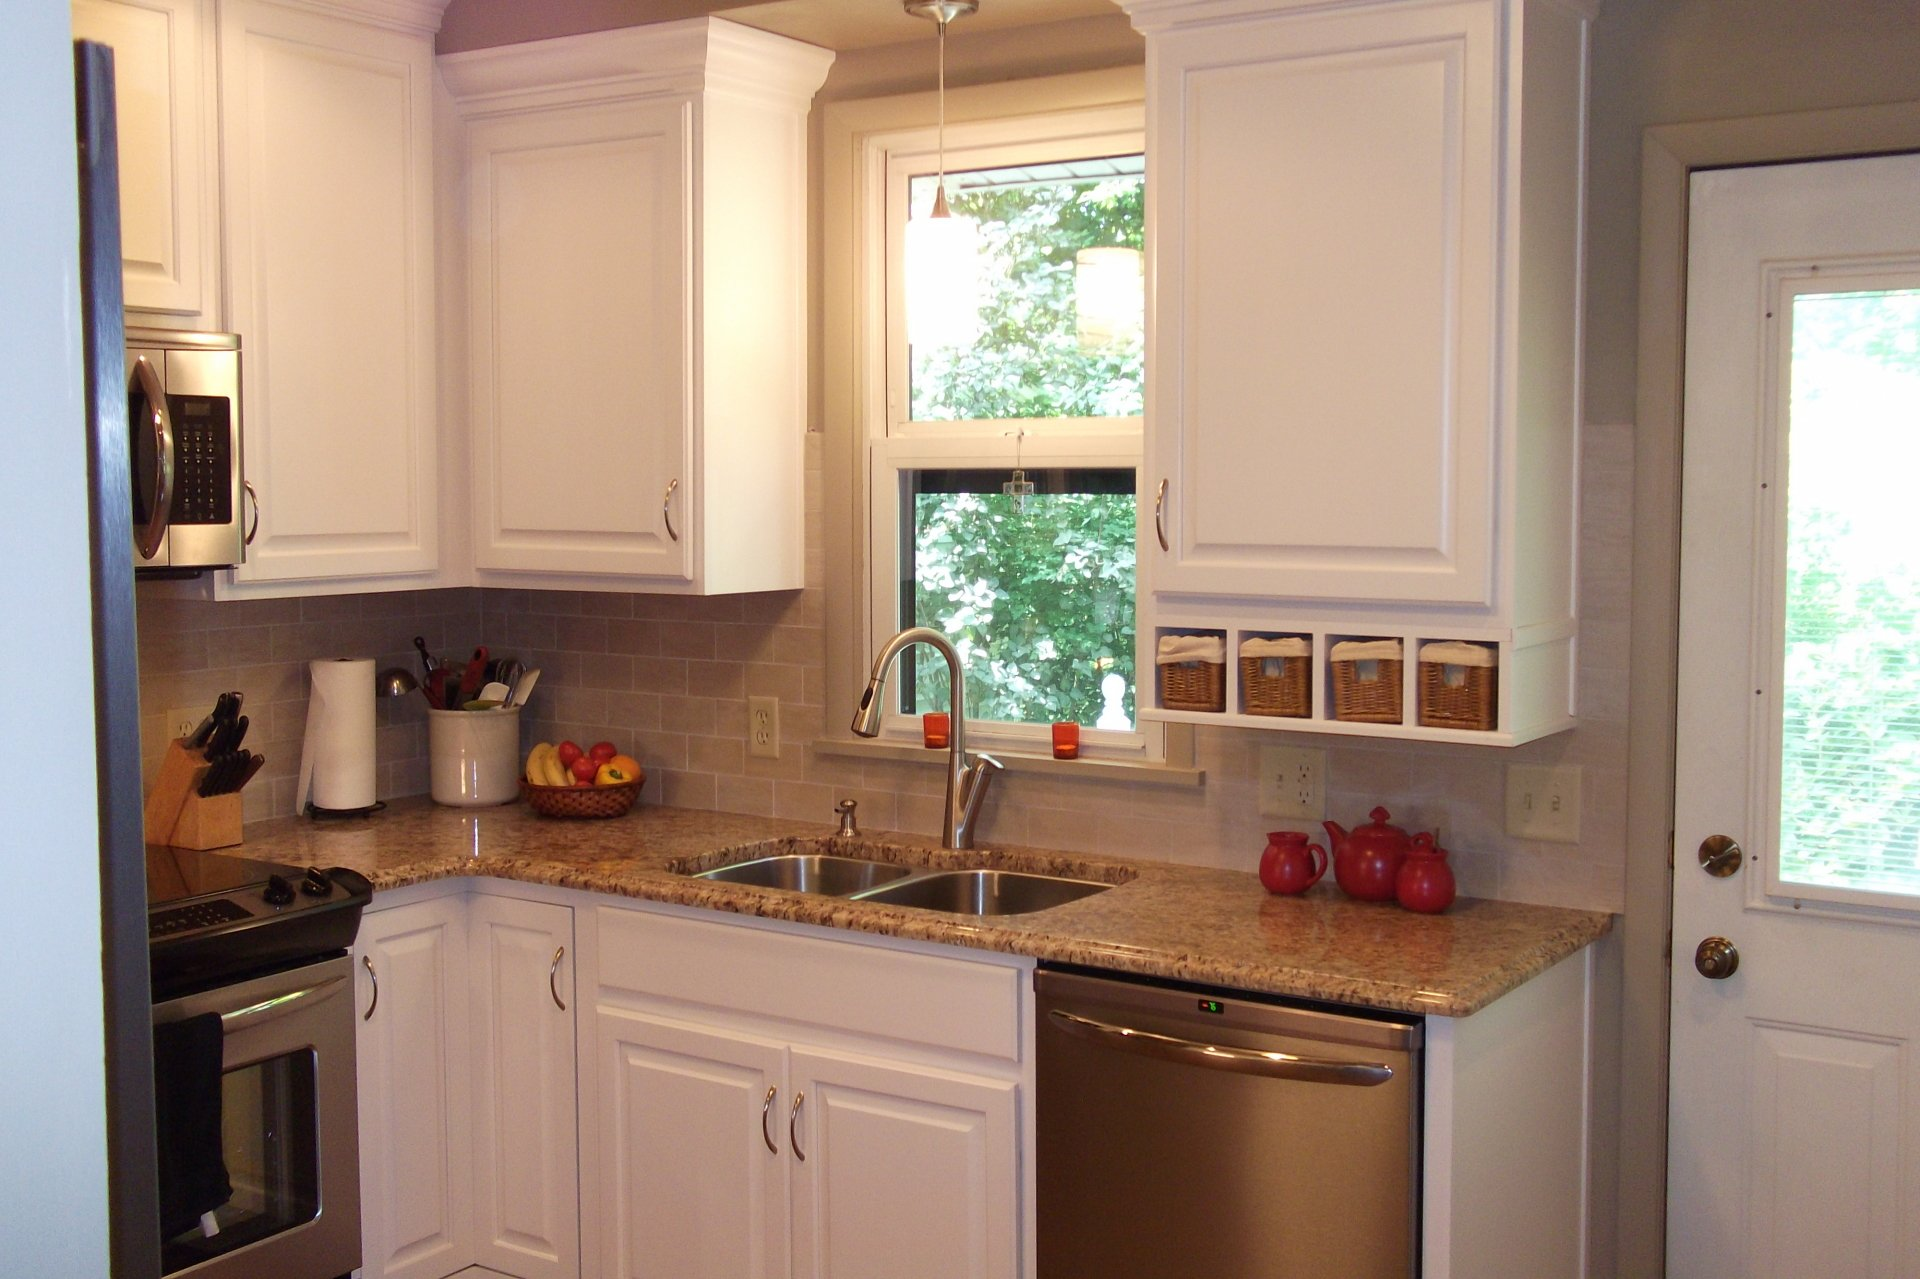 How To Choose A Countertop Color How To Choose A Kitchen Color With A Timeless Color Scheme